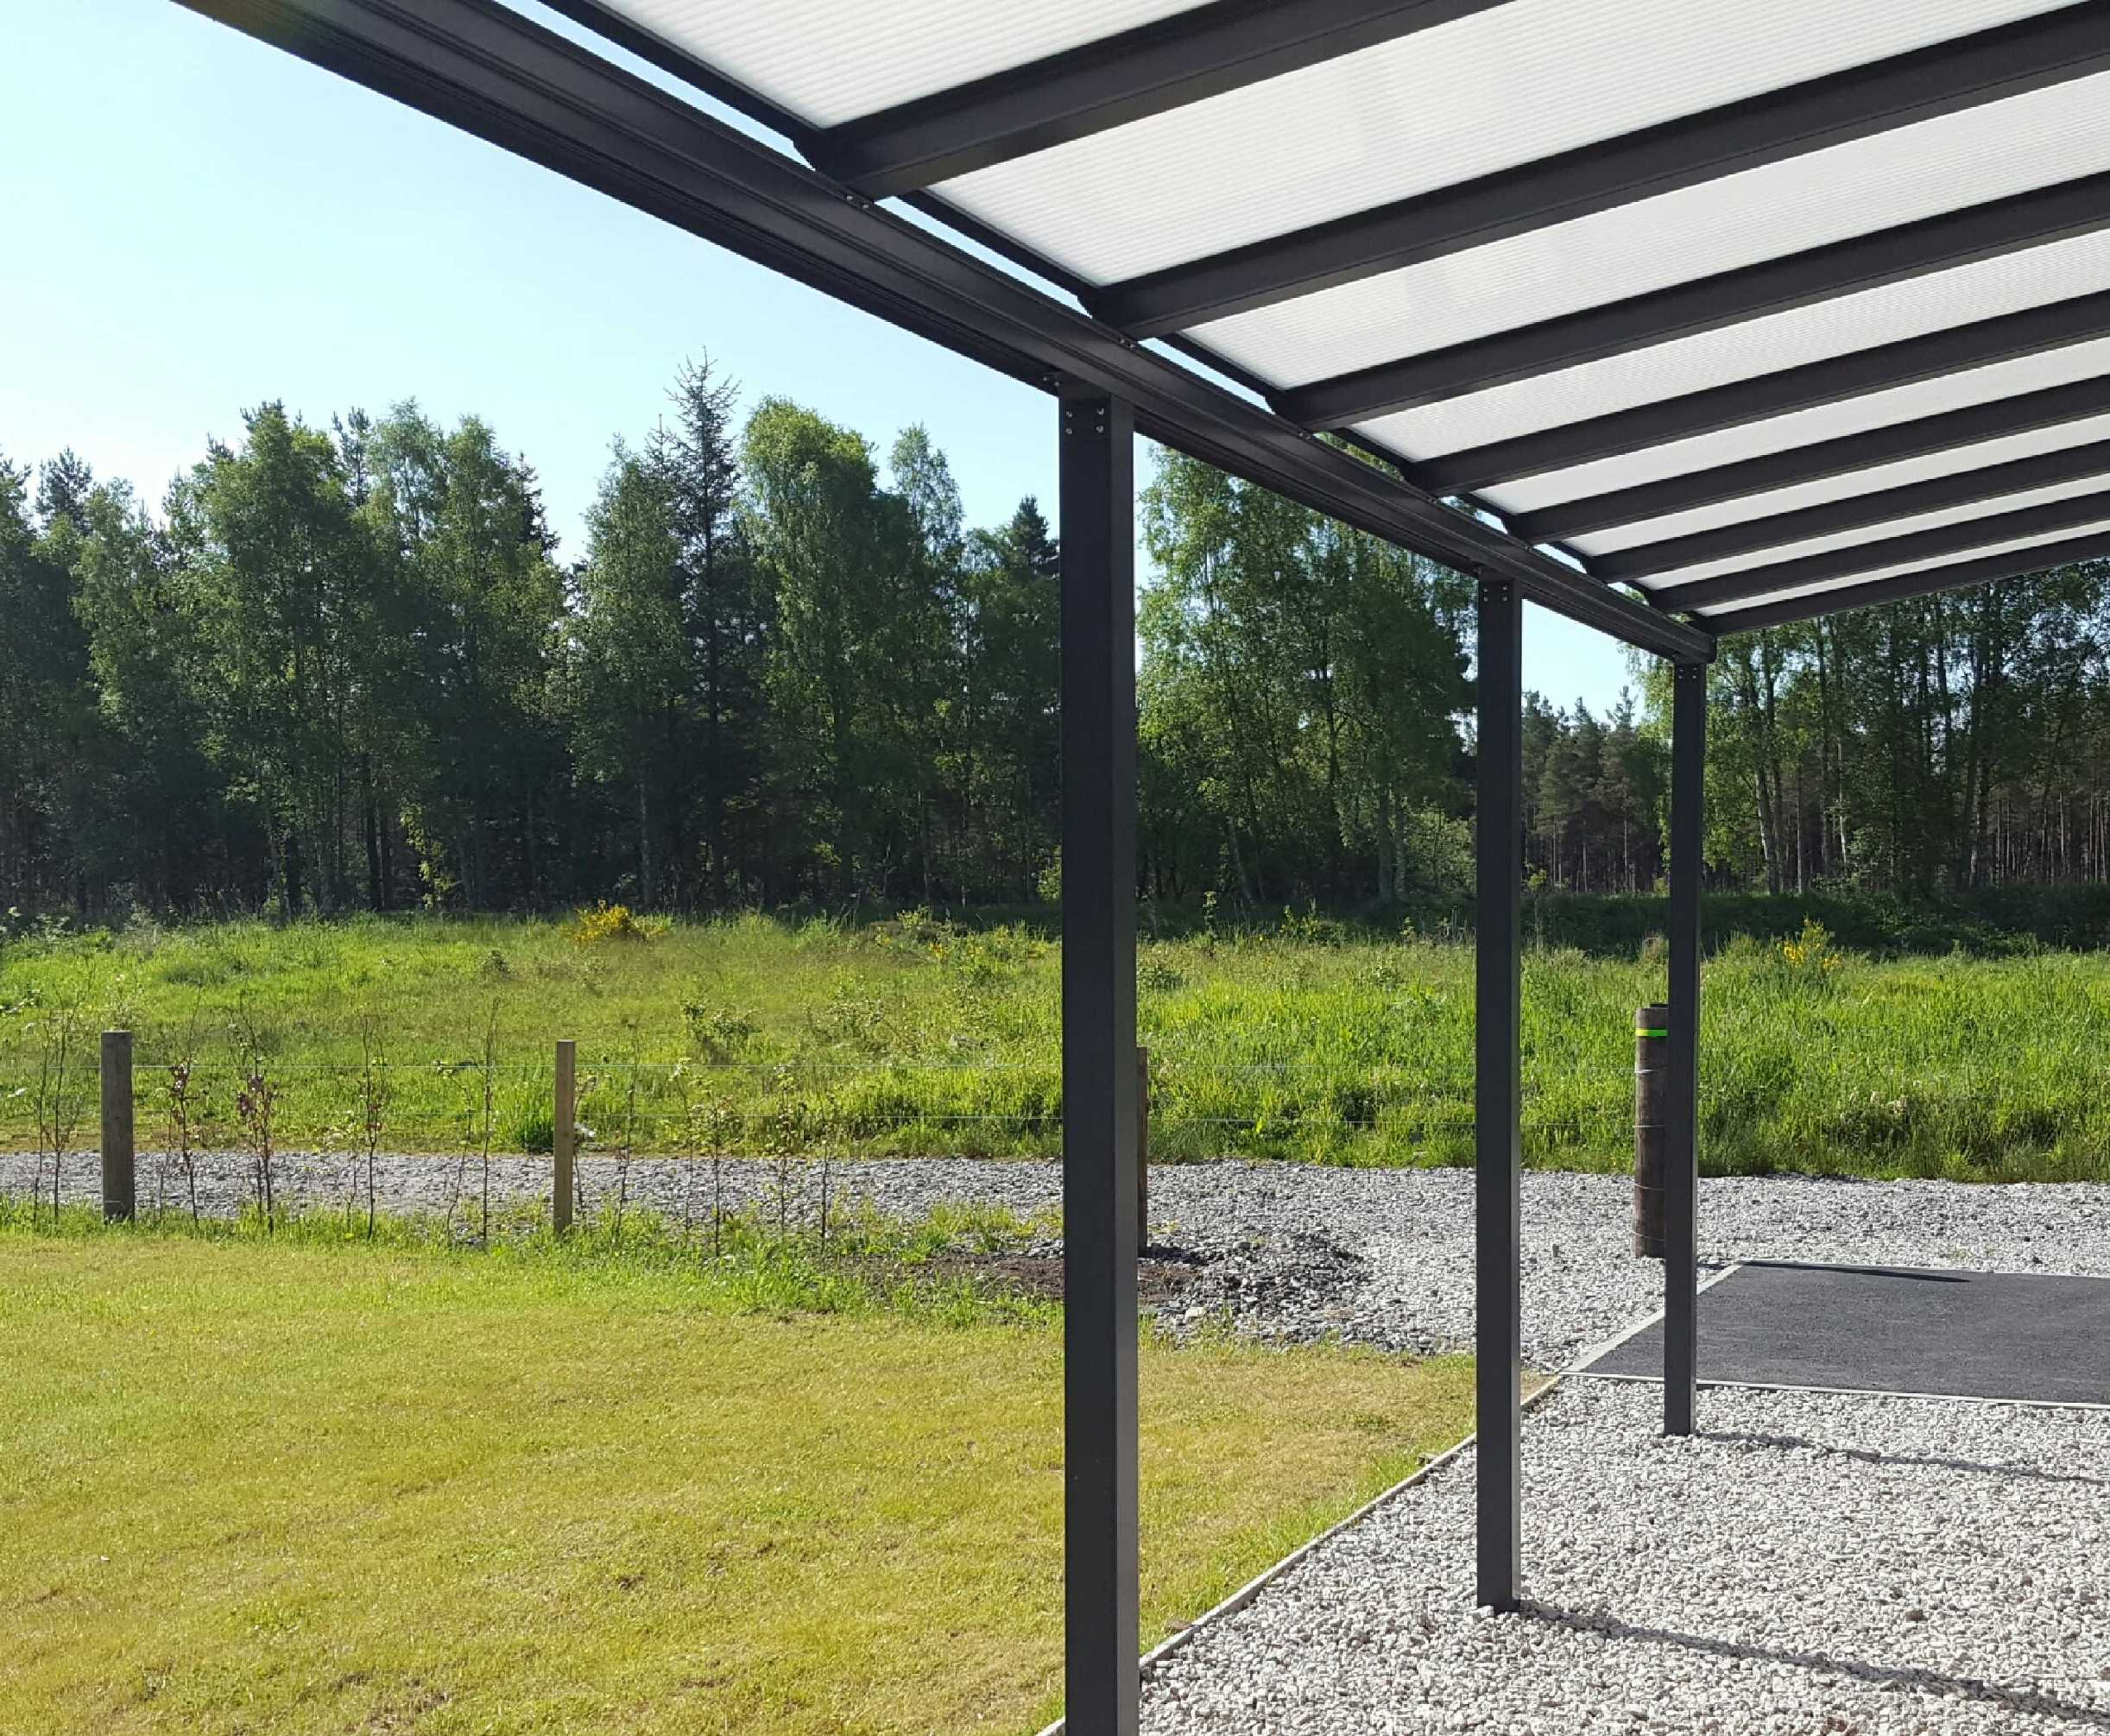 Omega Smart Lean-To Canopy, Anthracite Grey, UNGLAZED for 6mm Glazing - 4.9m (W) x 2.5m (P), (3) Supporting Posts